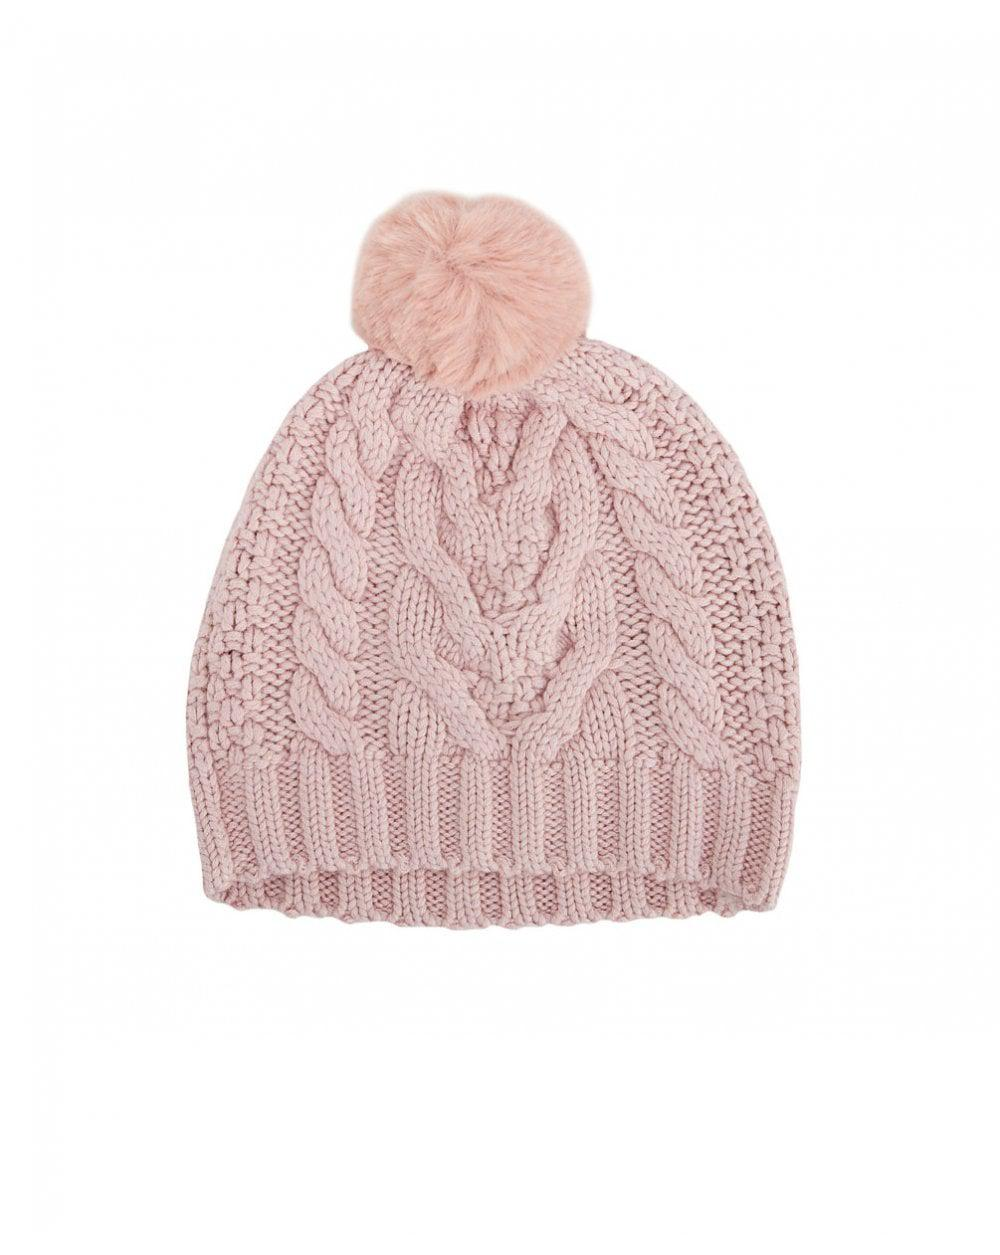 d890fc41d83 Lyst - Ted Baker Cable Knit Pom Pom Hat in Pink